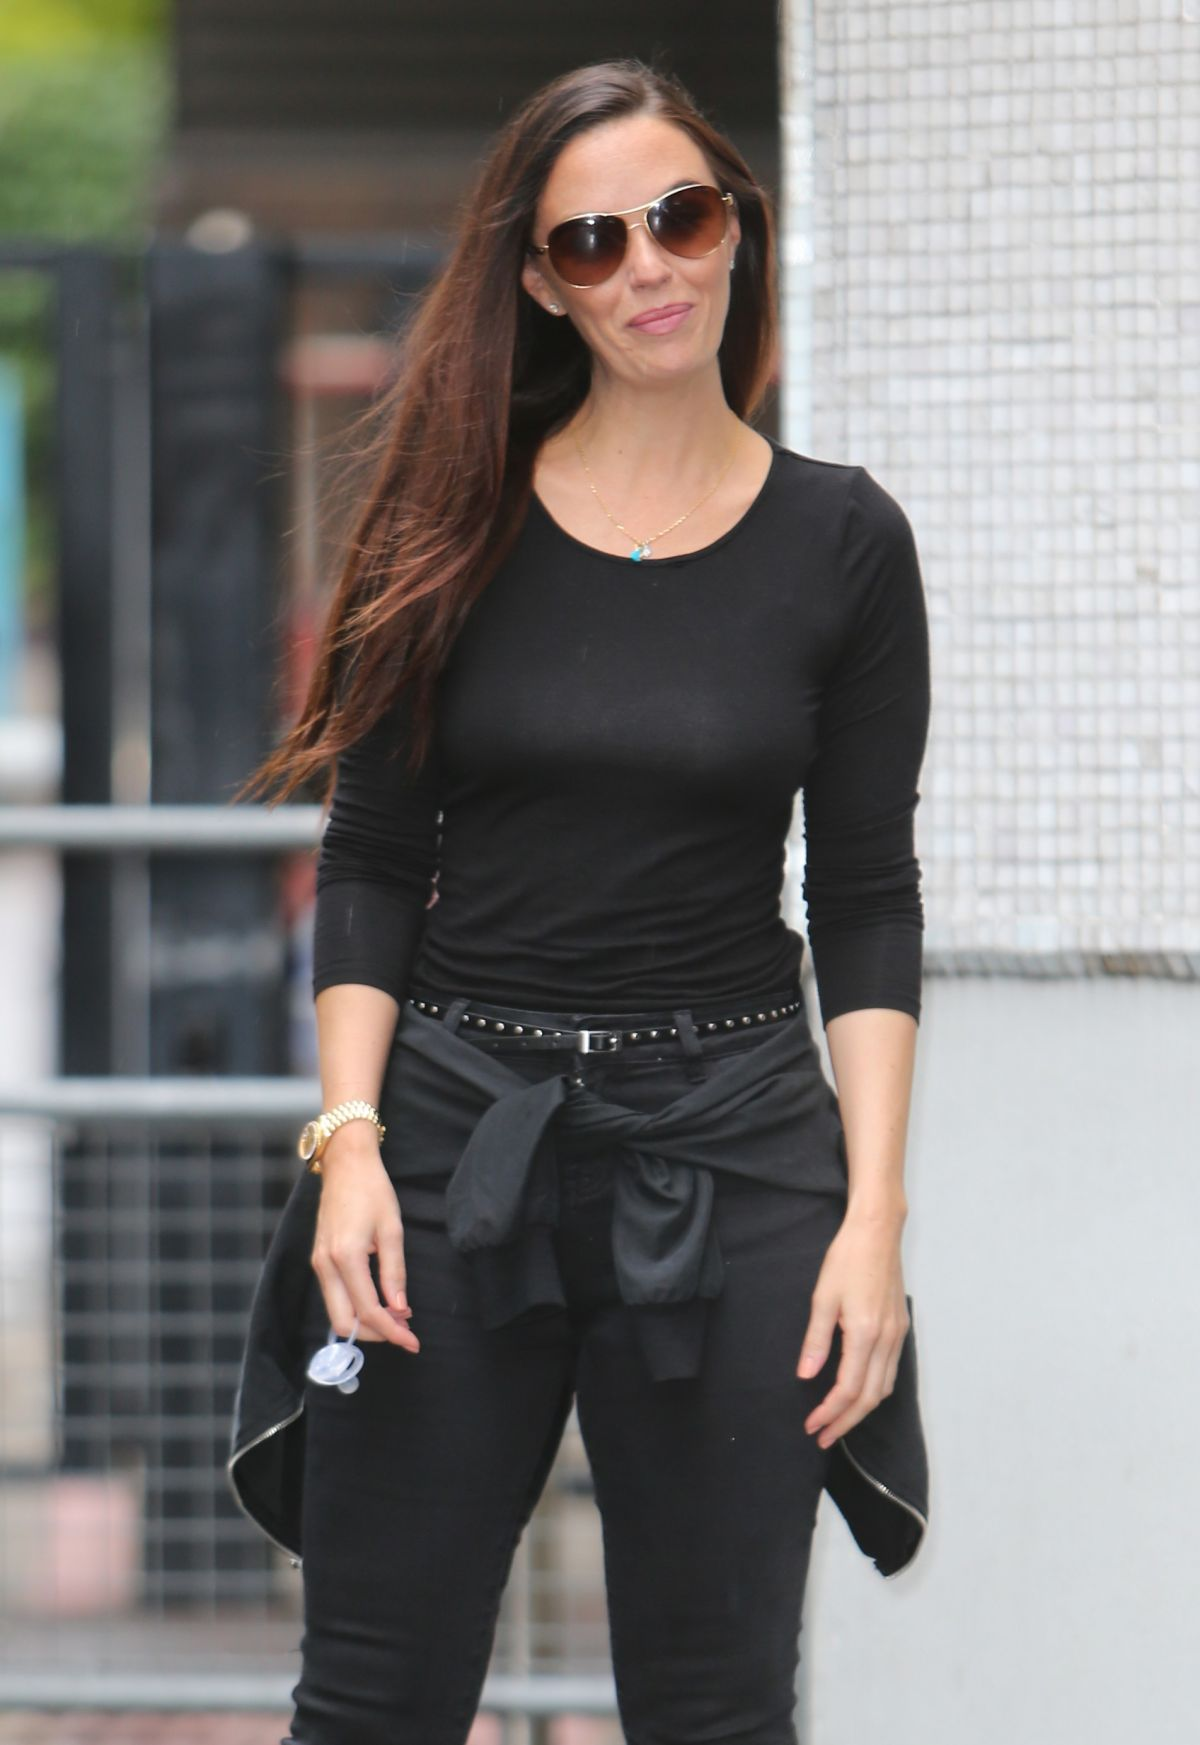 JENNIFER METCALFE at ITV Studios in London 08/17/2017